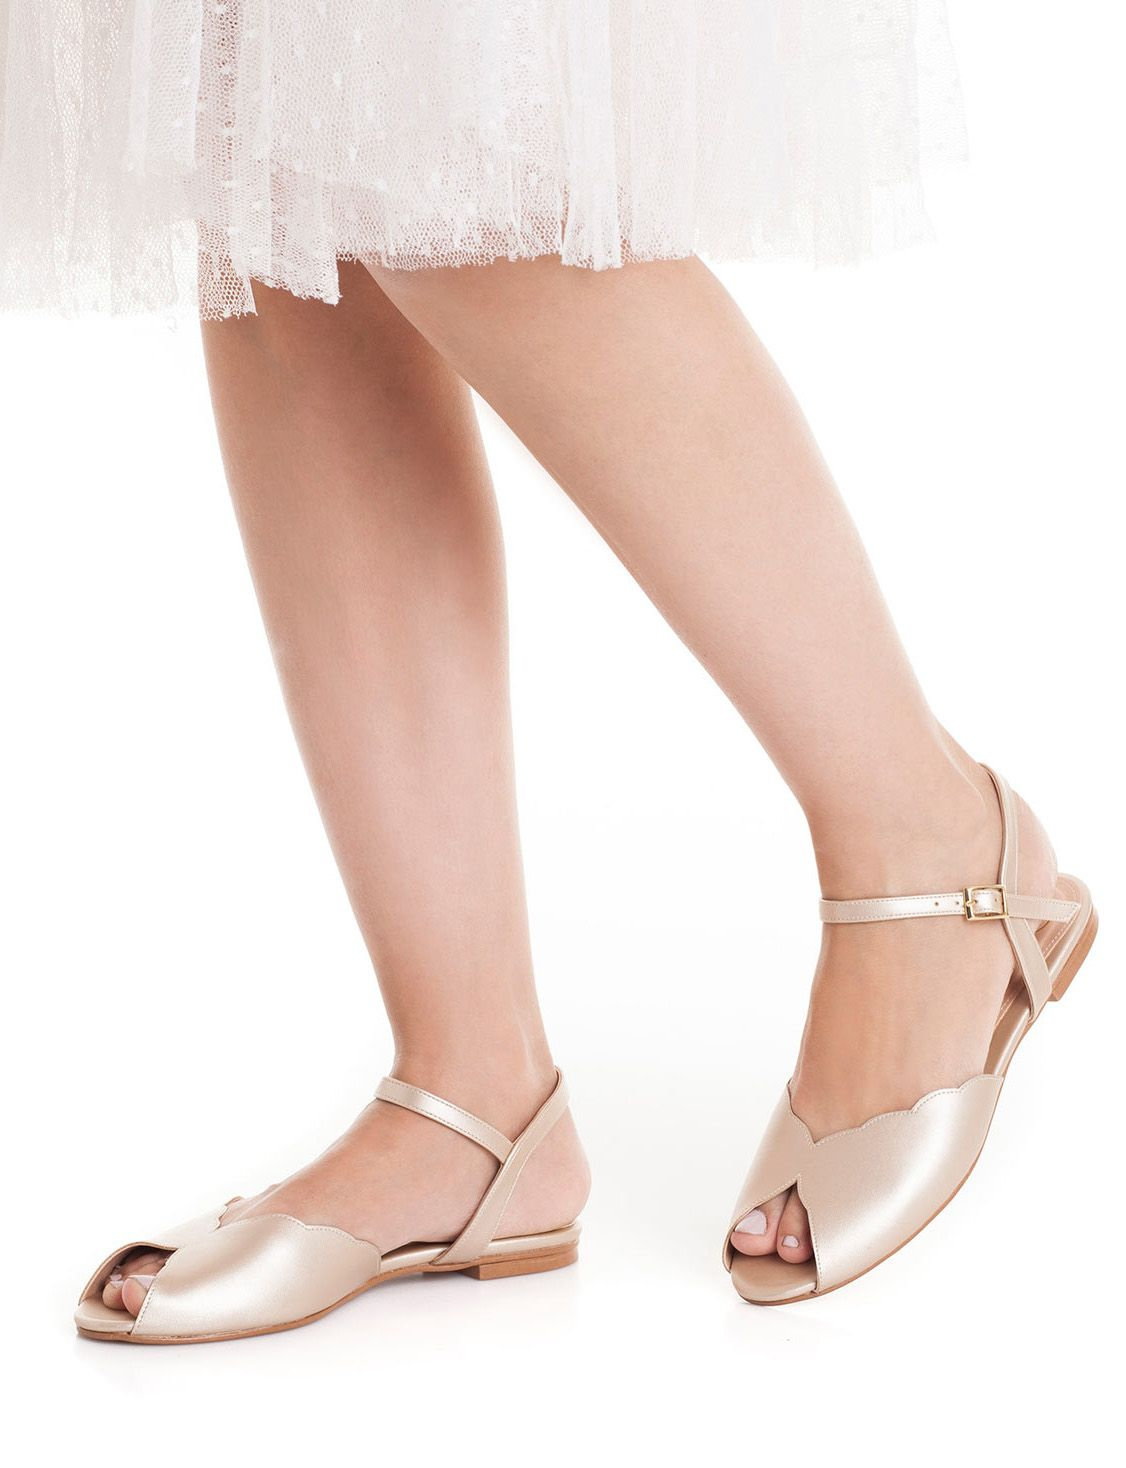 The Ahuva Champagne Vegan Bridal Flat Sandal Vintage Inspired